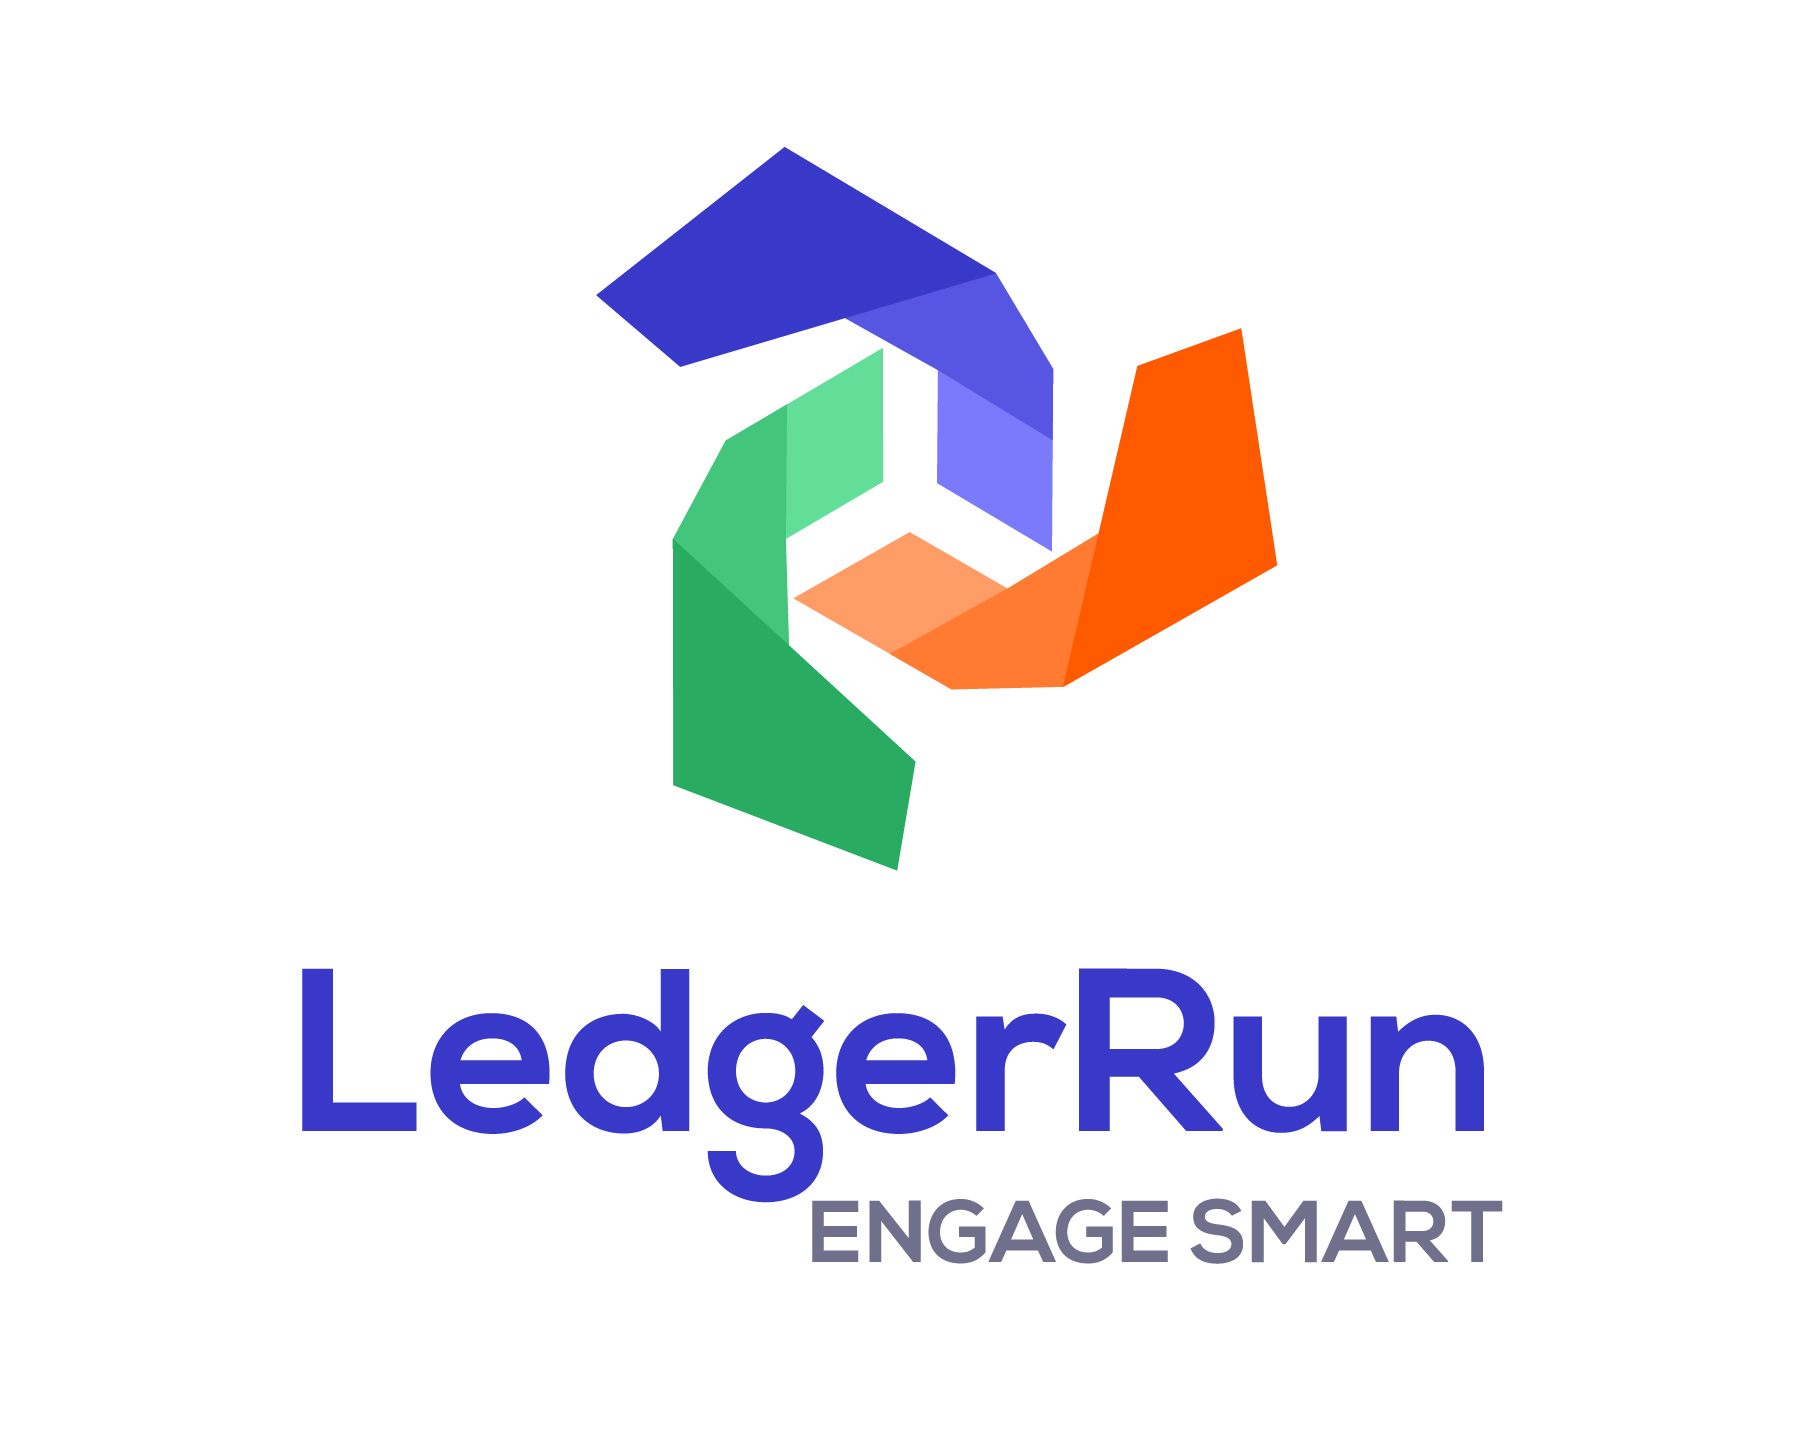 Ledger Run